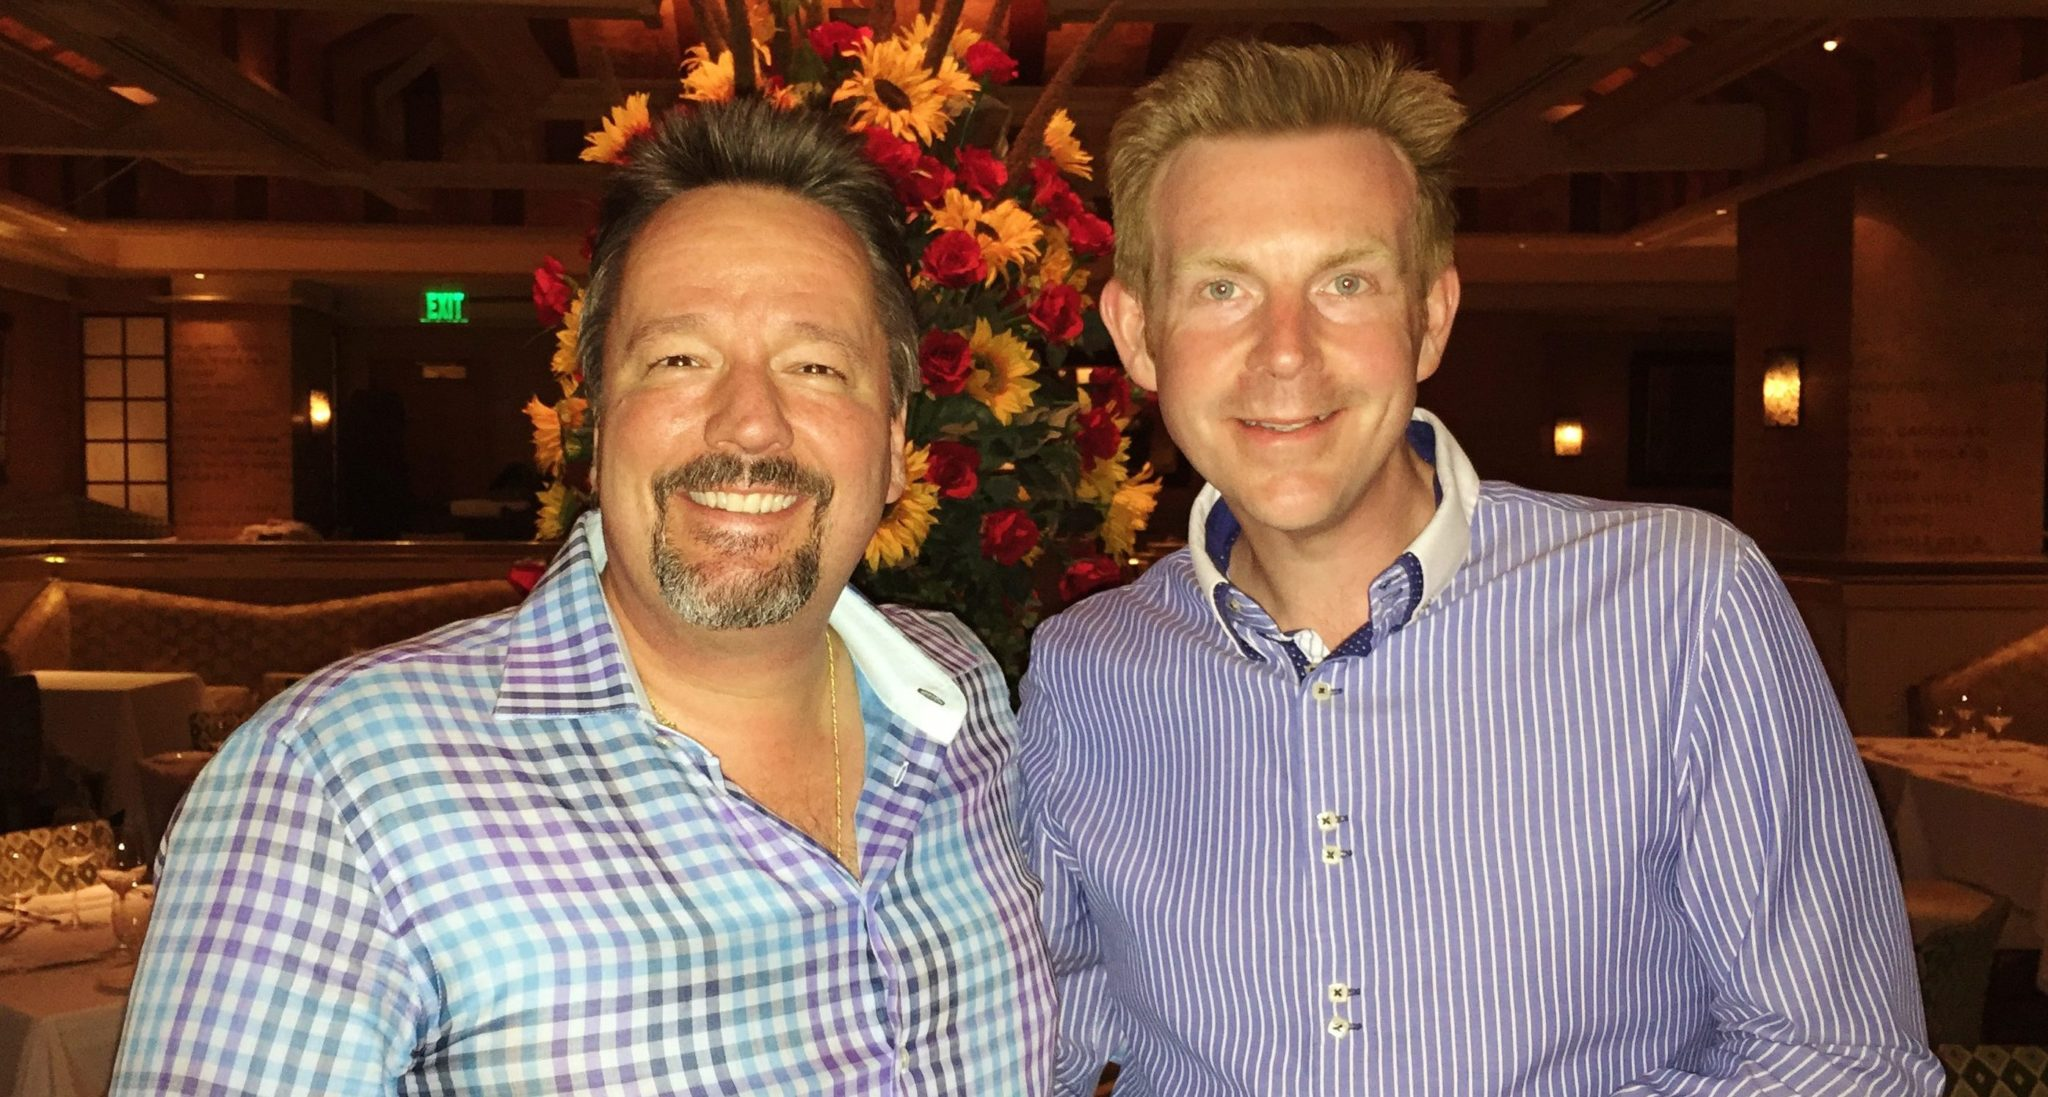 Enjoy Celebrity Radio's Review Terry Fator Mirage Las Vegas 2016 Interview… We've loved & supported Terry Fator since he opened in 2008 at the Mirage Hotel & […]